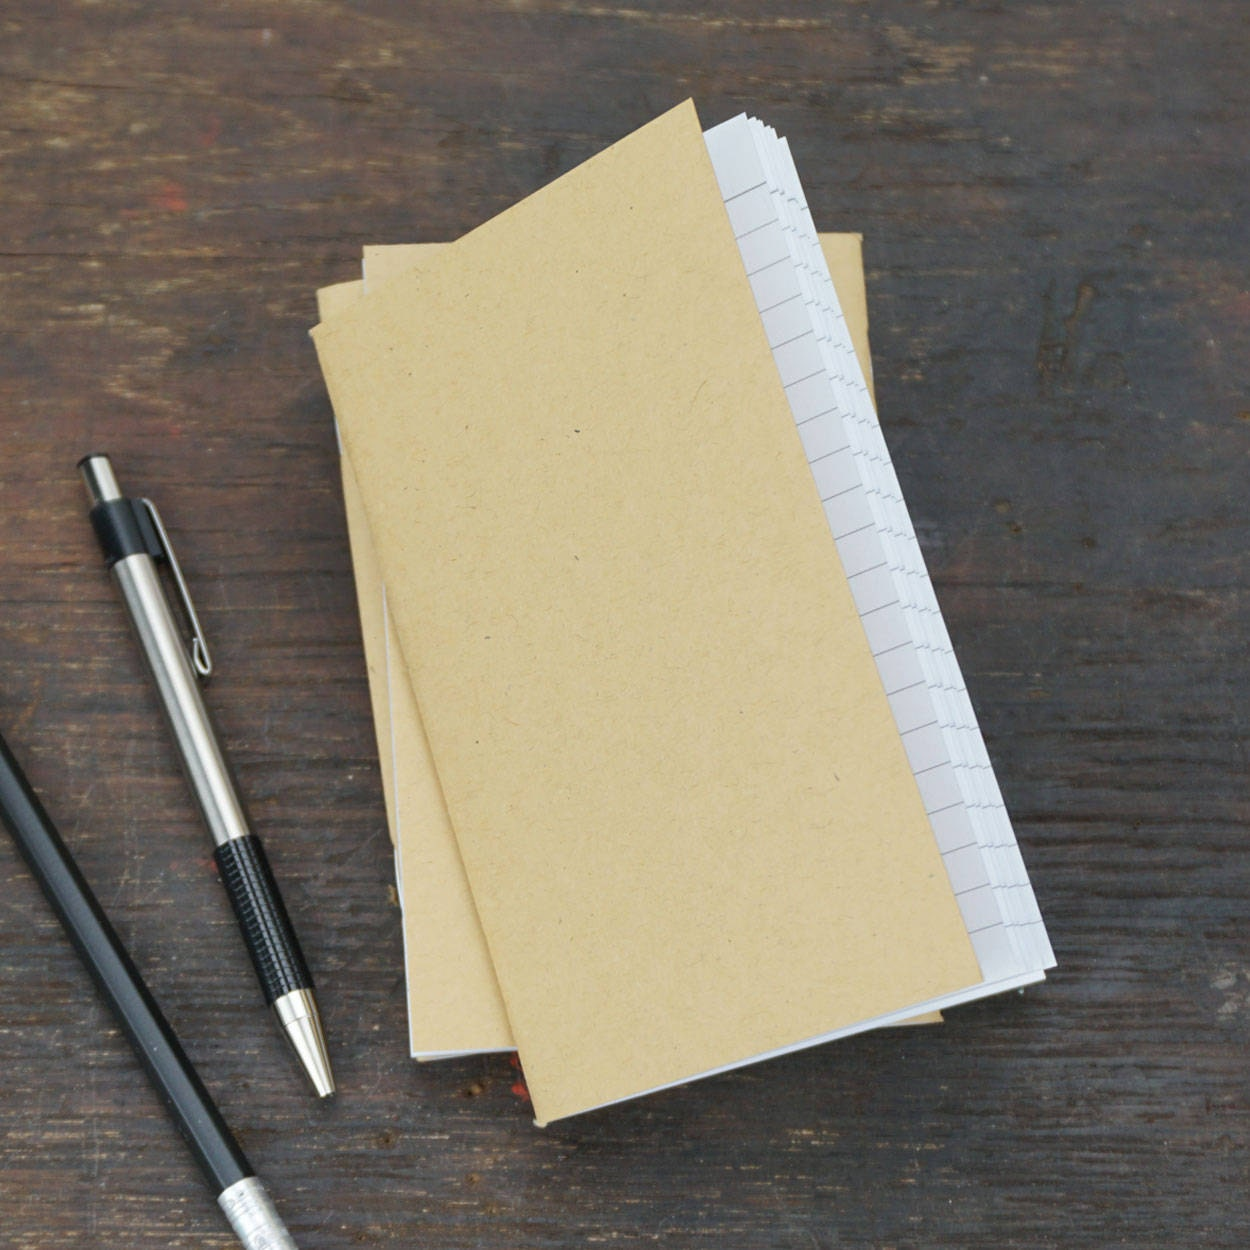 Lined Notebook, 3.5 x 5.5, Available in Bulk Packs, Buy More and Save